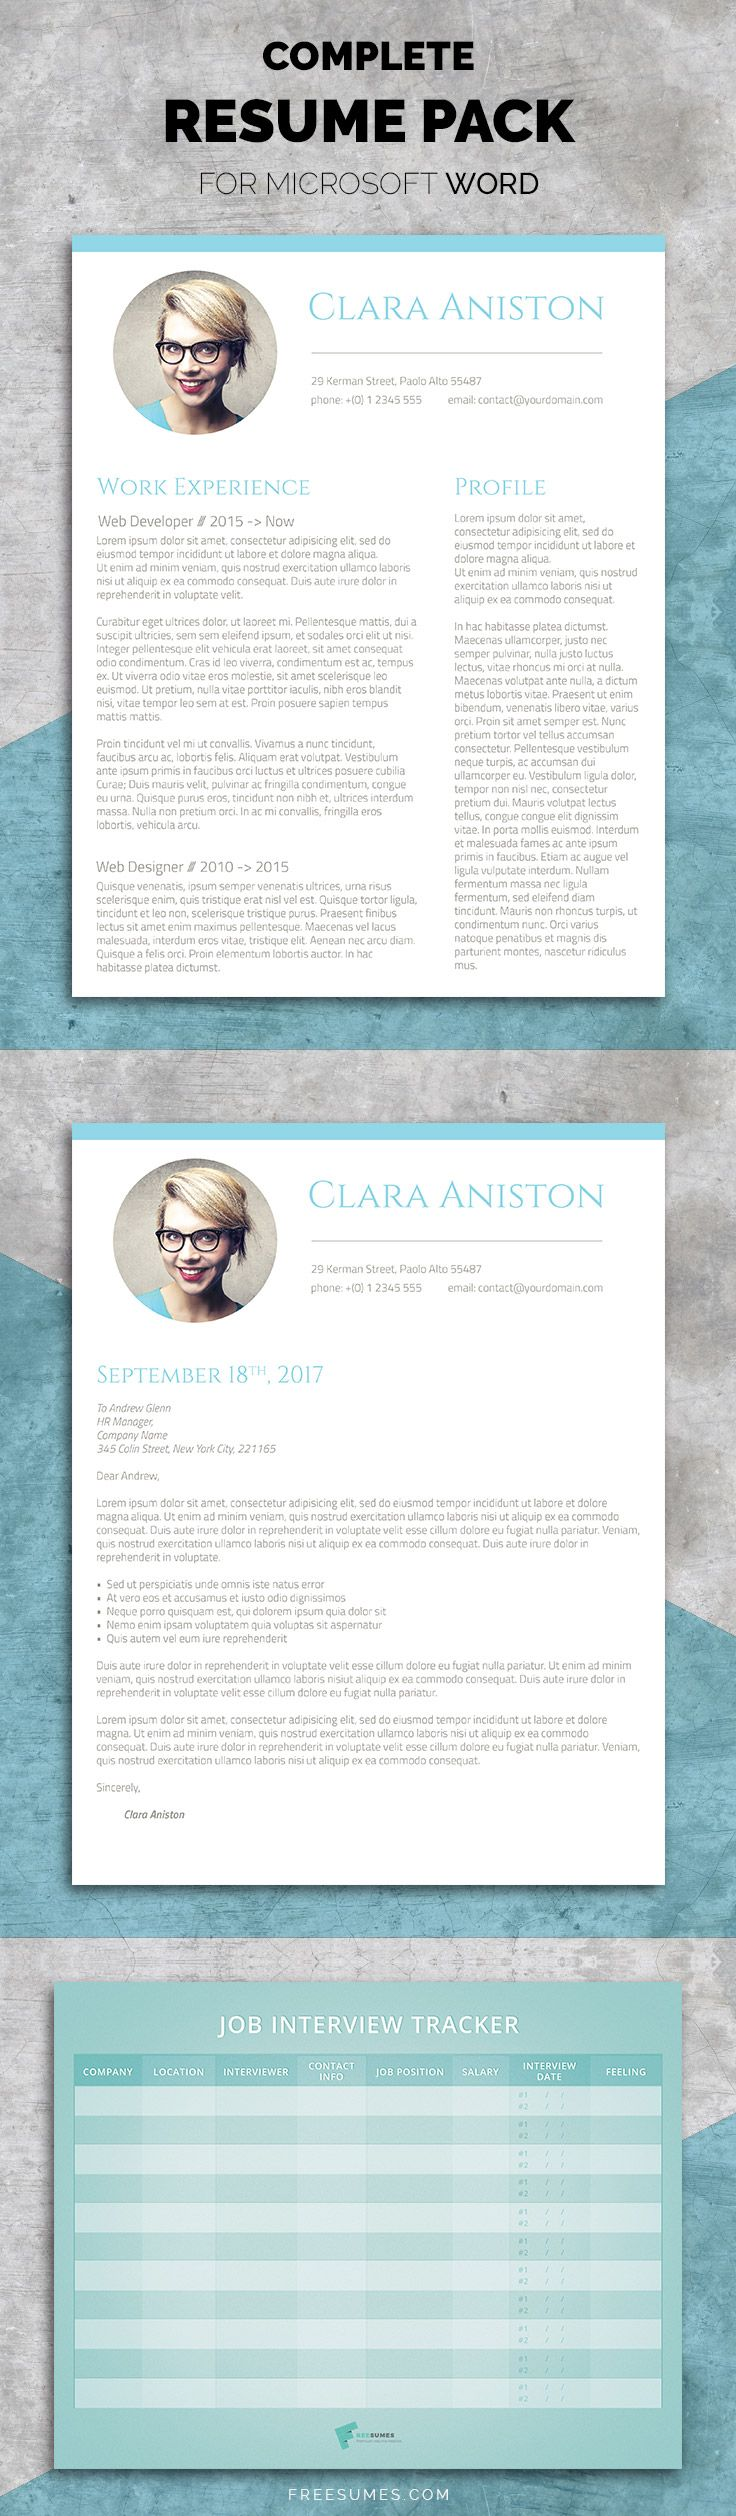 Resume Template Set - The Simple Snapshot A professionally designed resume template in Word format (US letter size) in both 1-page and 2-page resume versions. A matching cover letter in Word format to go with your resume A job interview tracker in print-ready PDF format